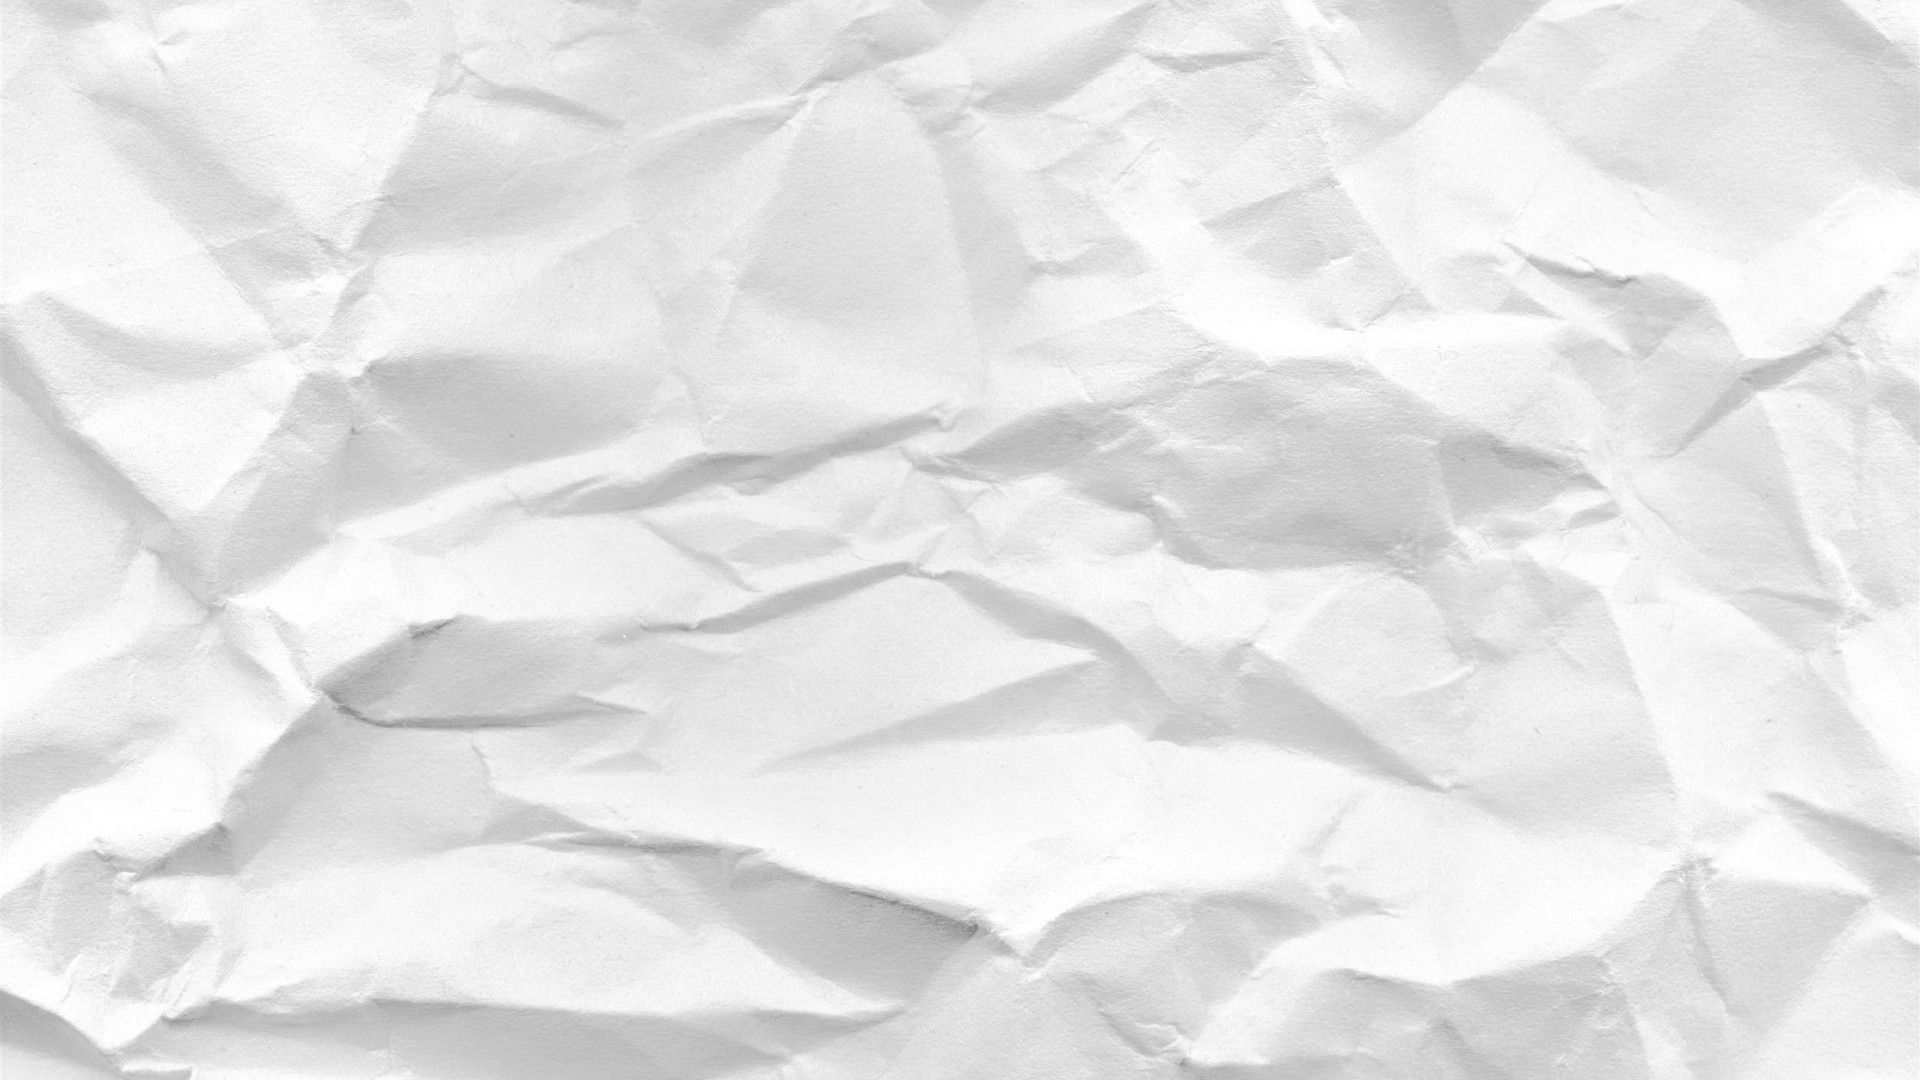 crumpled paper texture - Google Search | Industrial Patterns in 2019 ... jpg freeuse